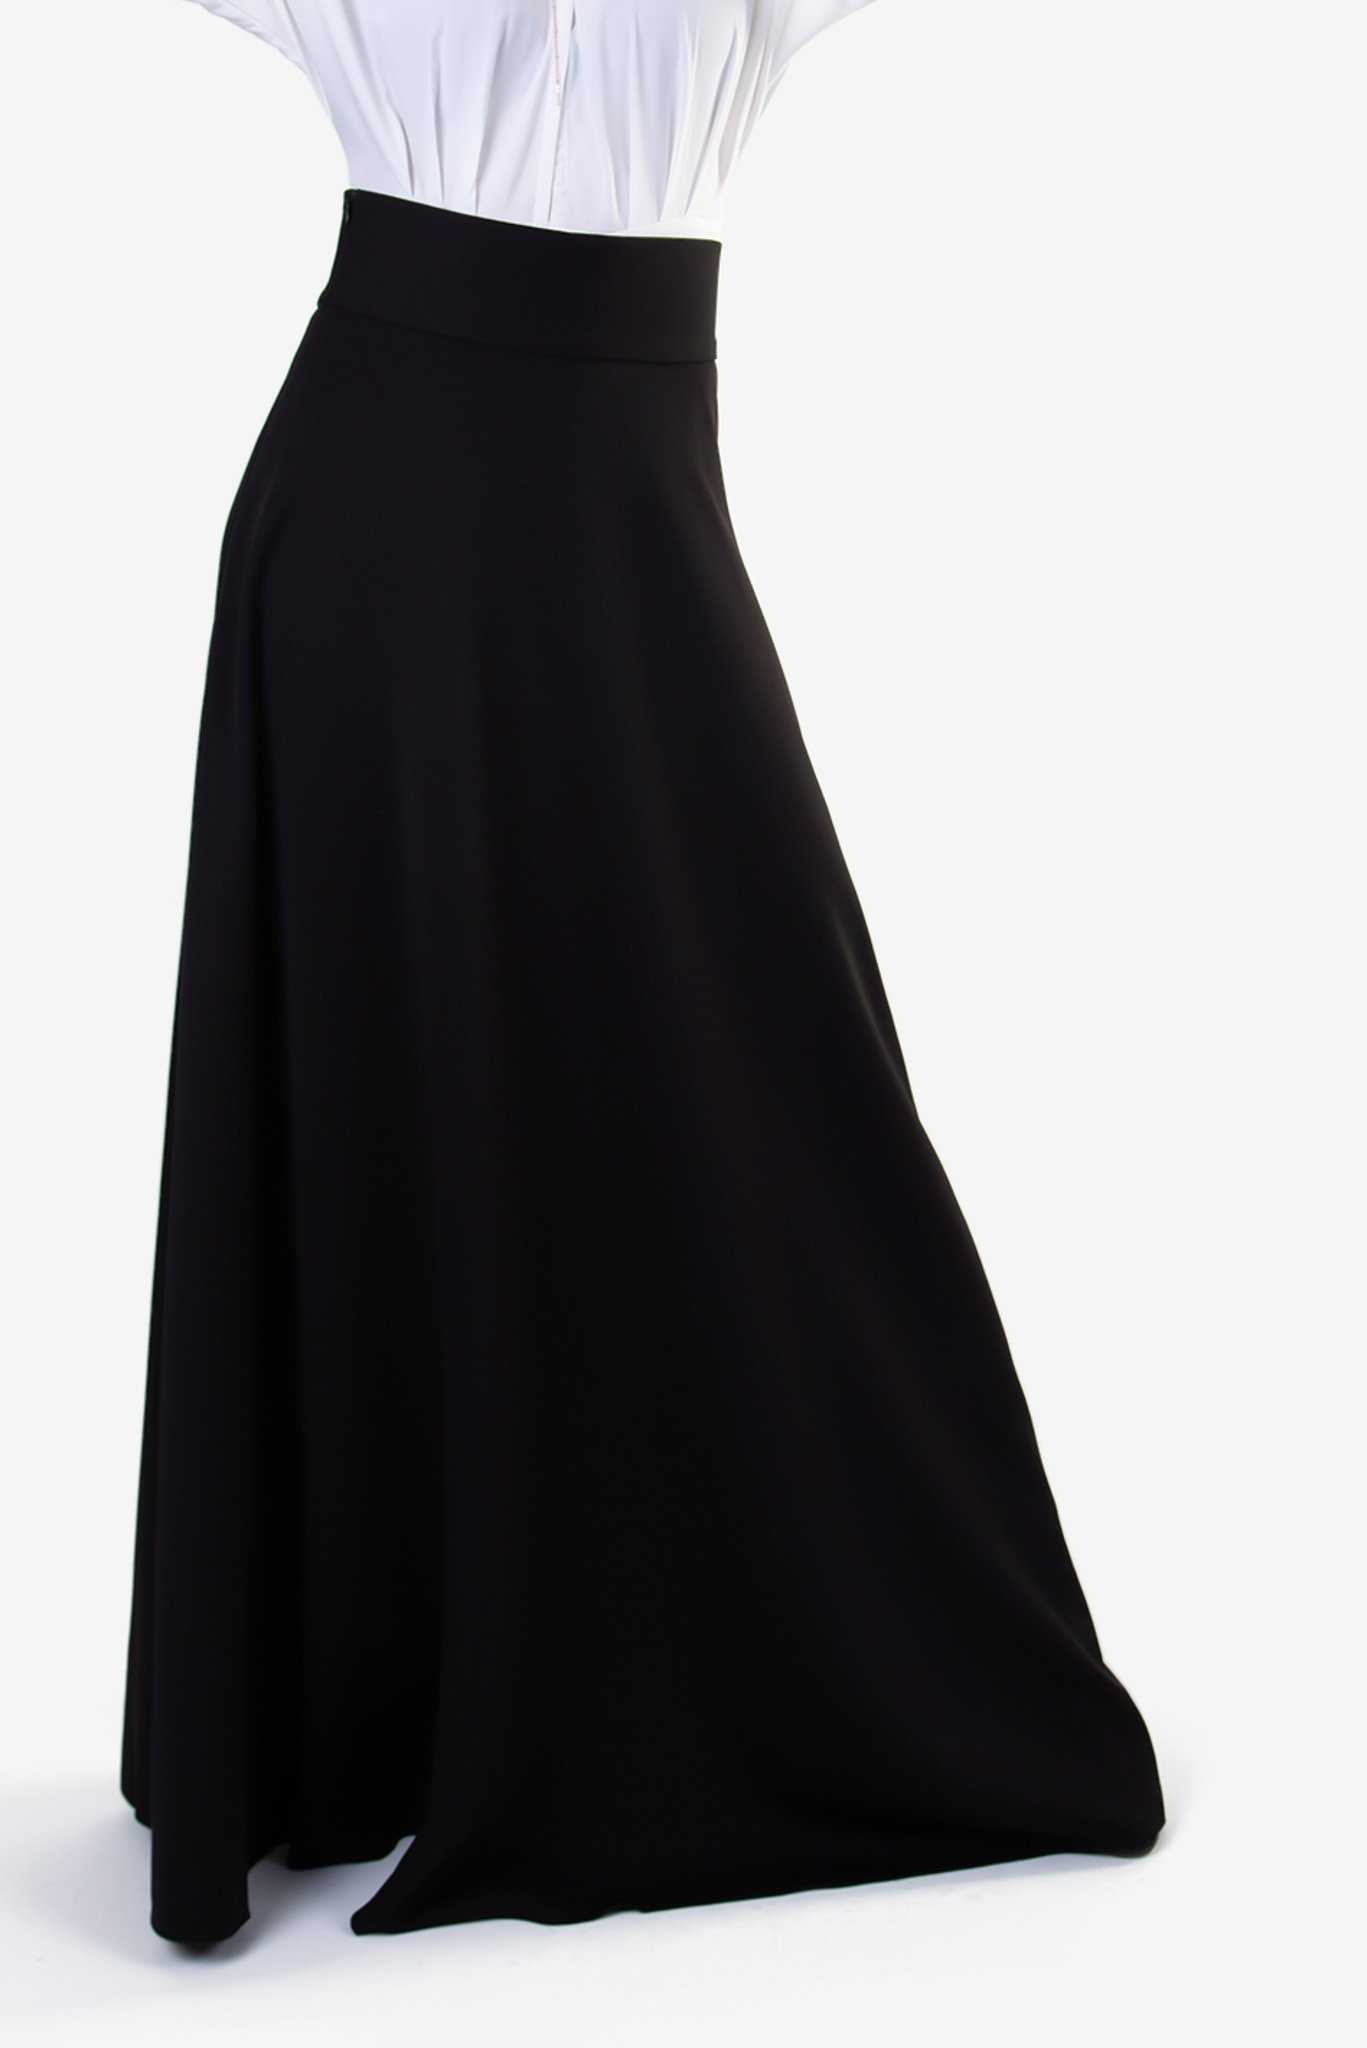 High Waist Maxi Skirt - Black | Raw Orange